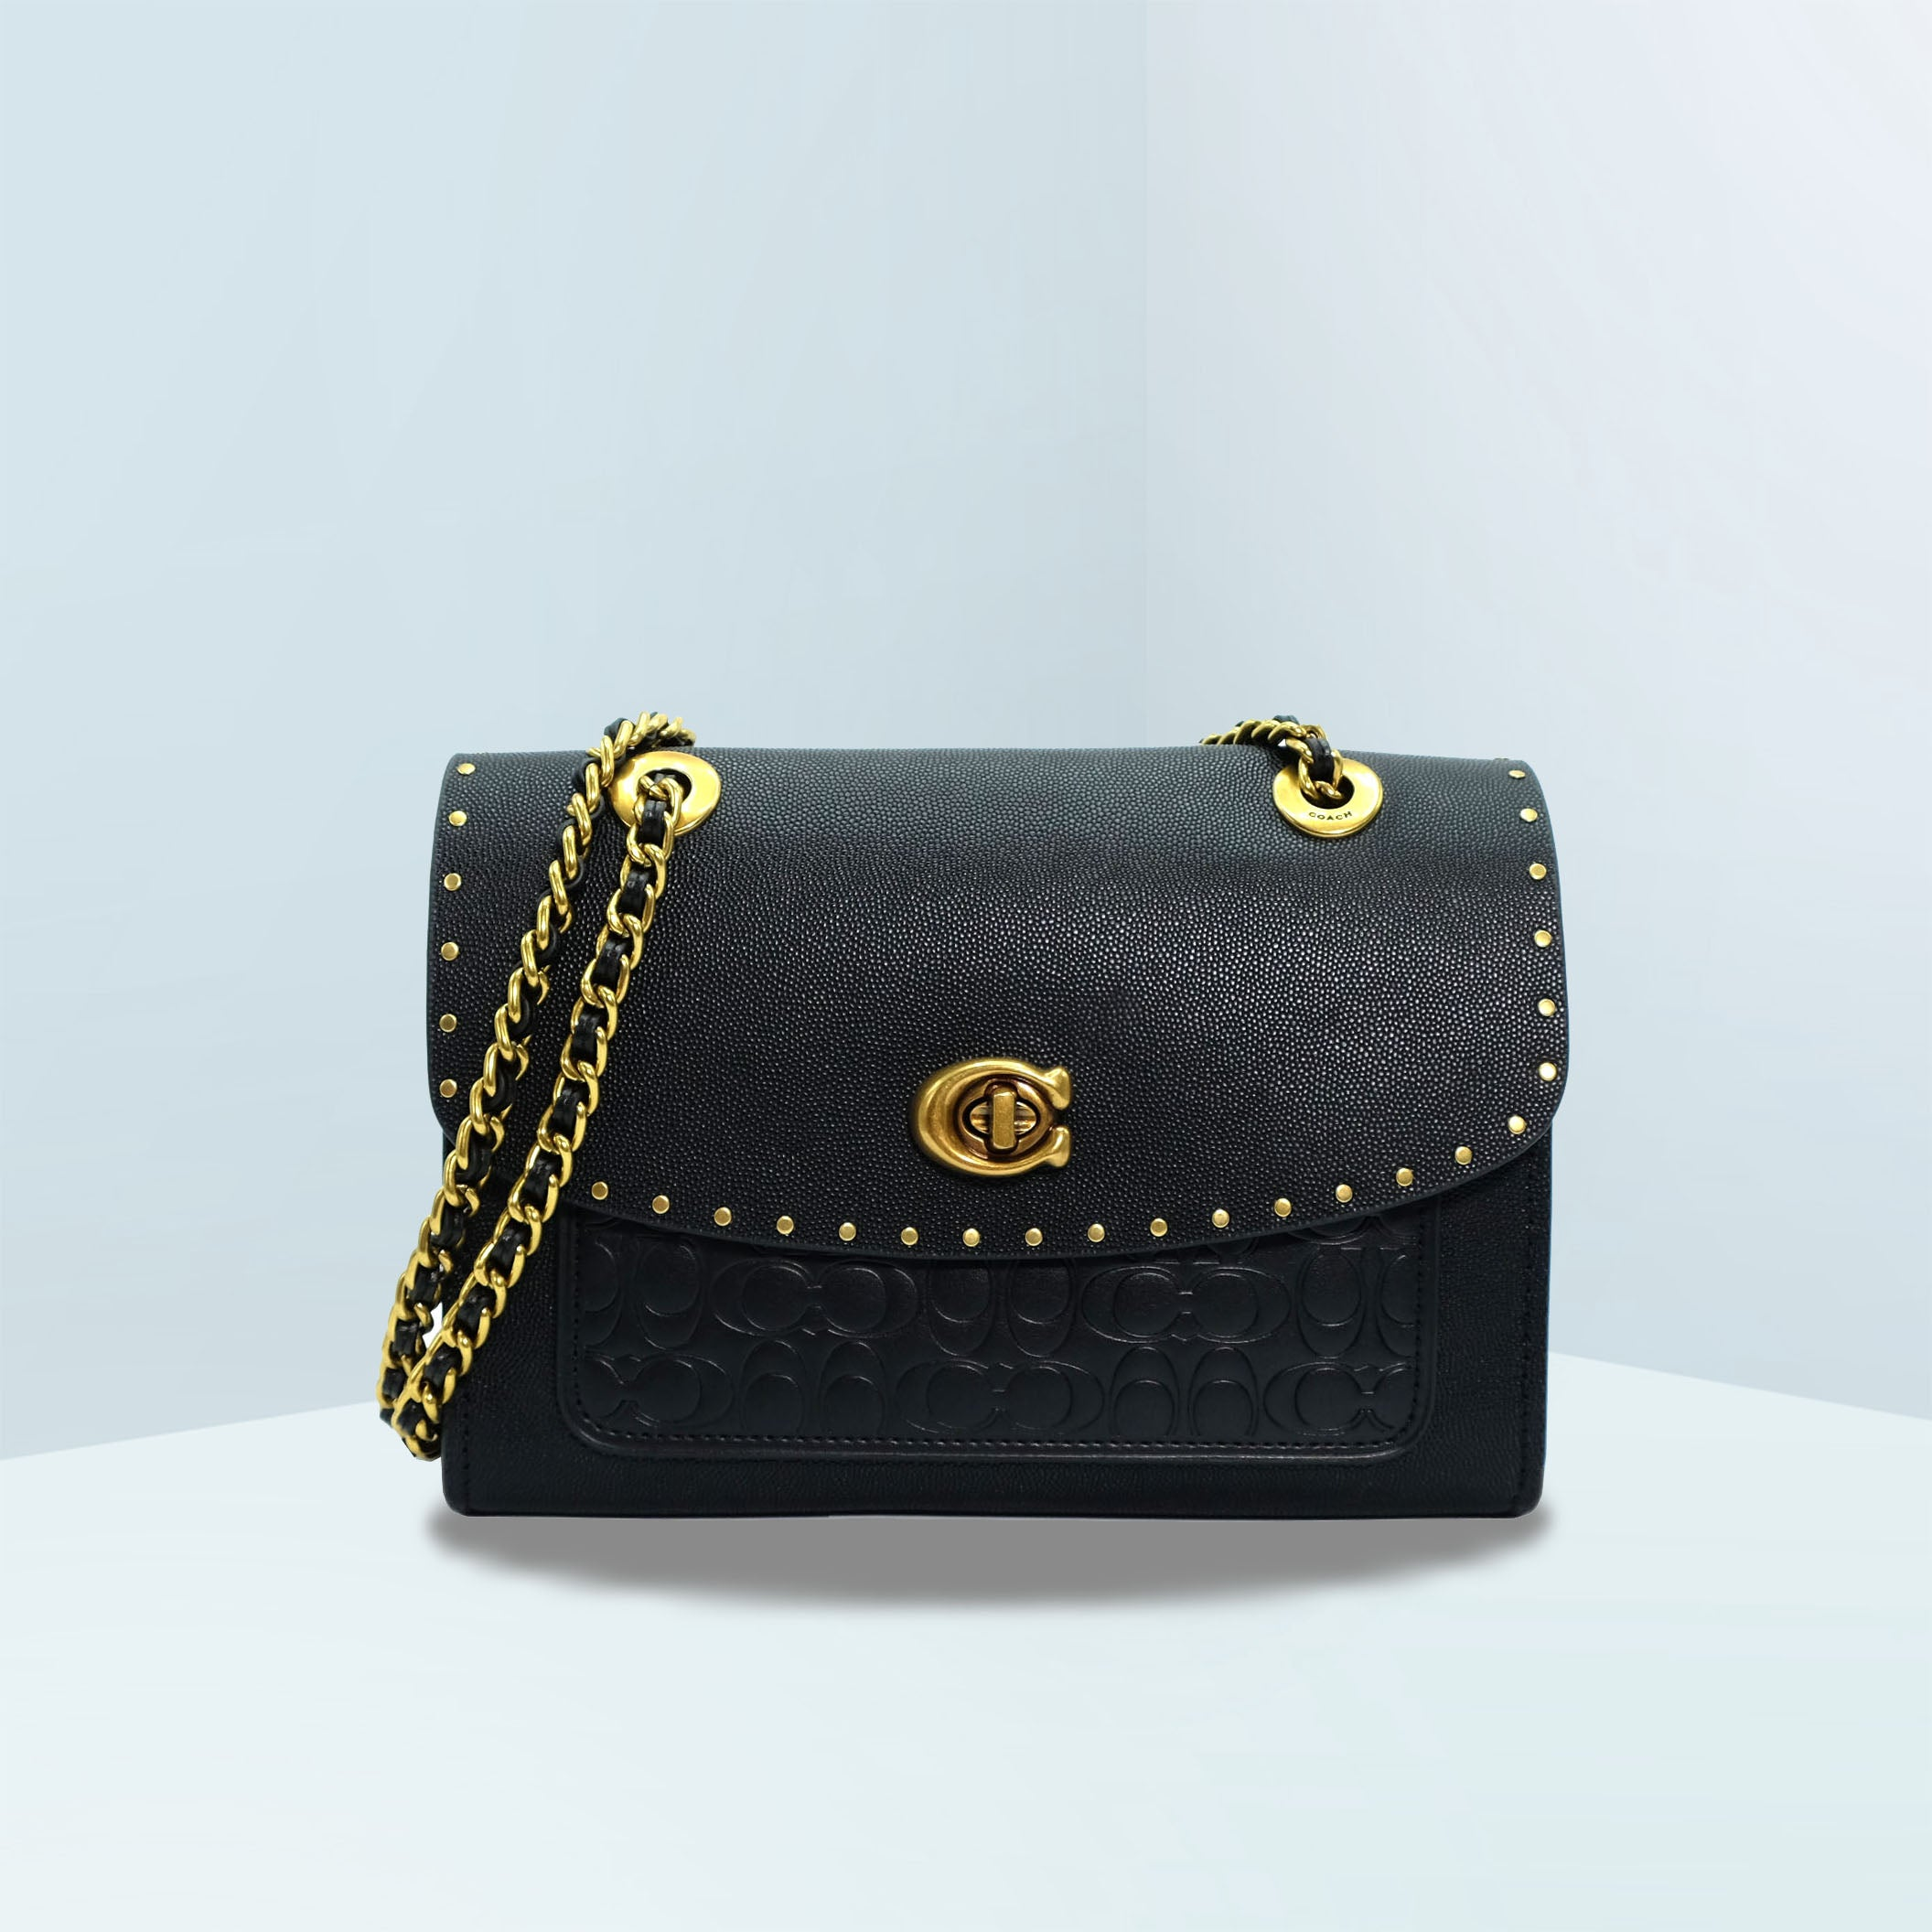 Parker In Signature Leather With Rivets Convertible Crossbody Bag